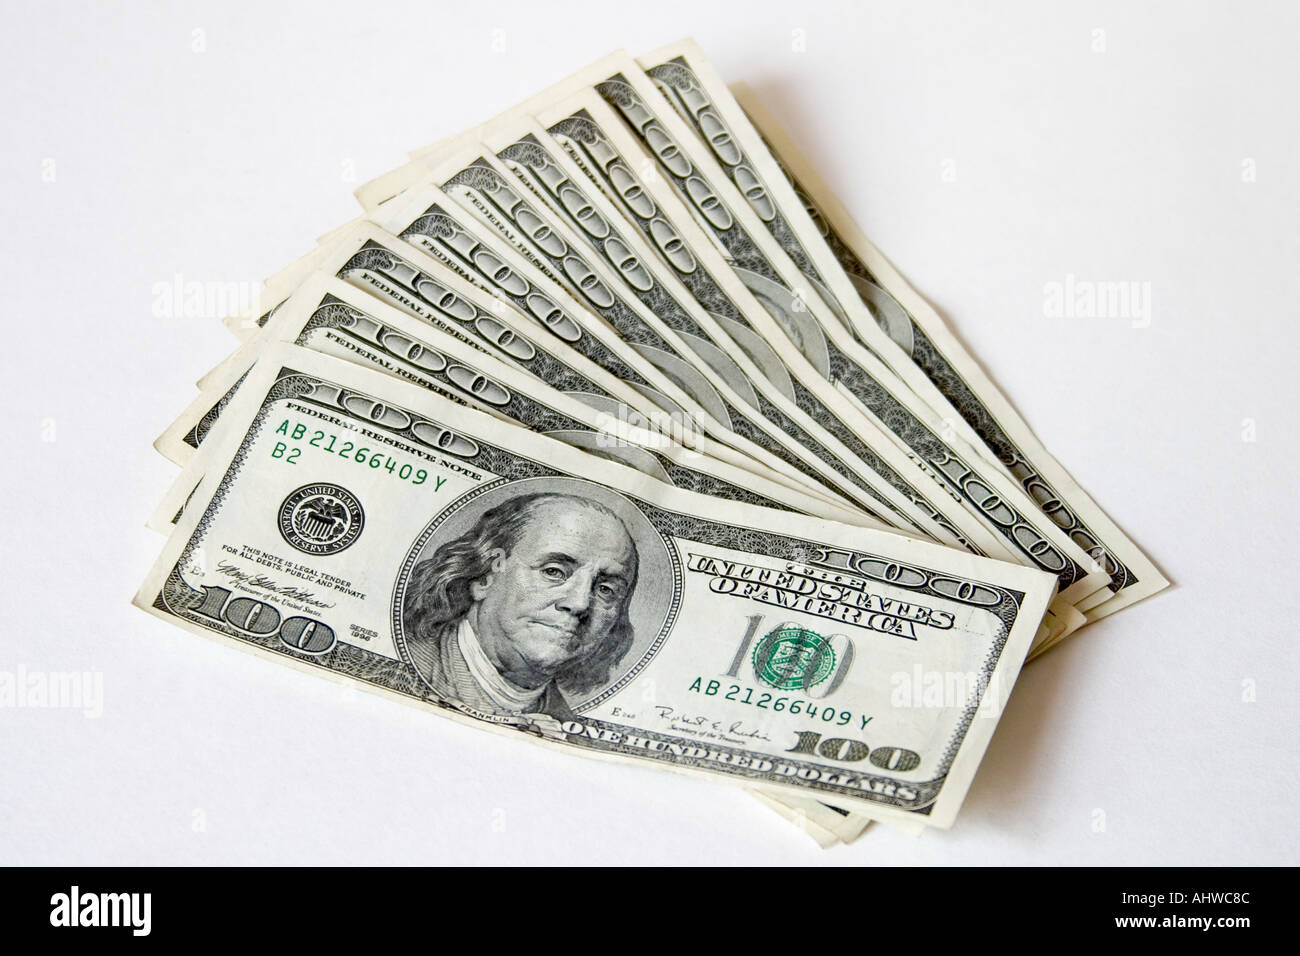 Forex trading with 1000 dollars